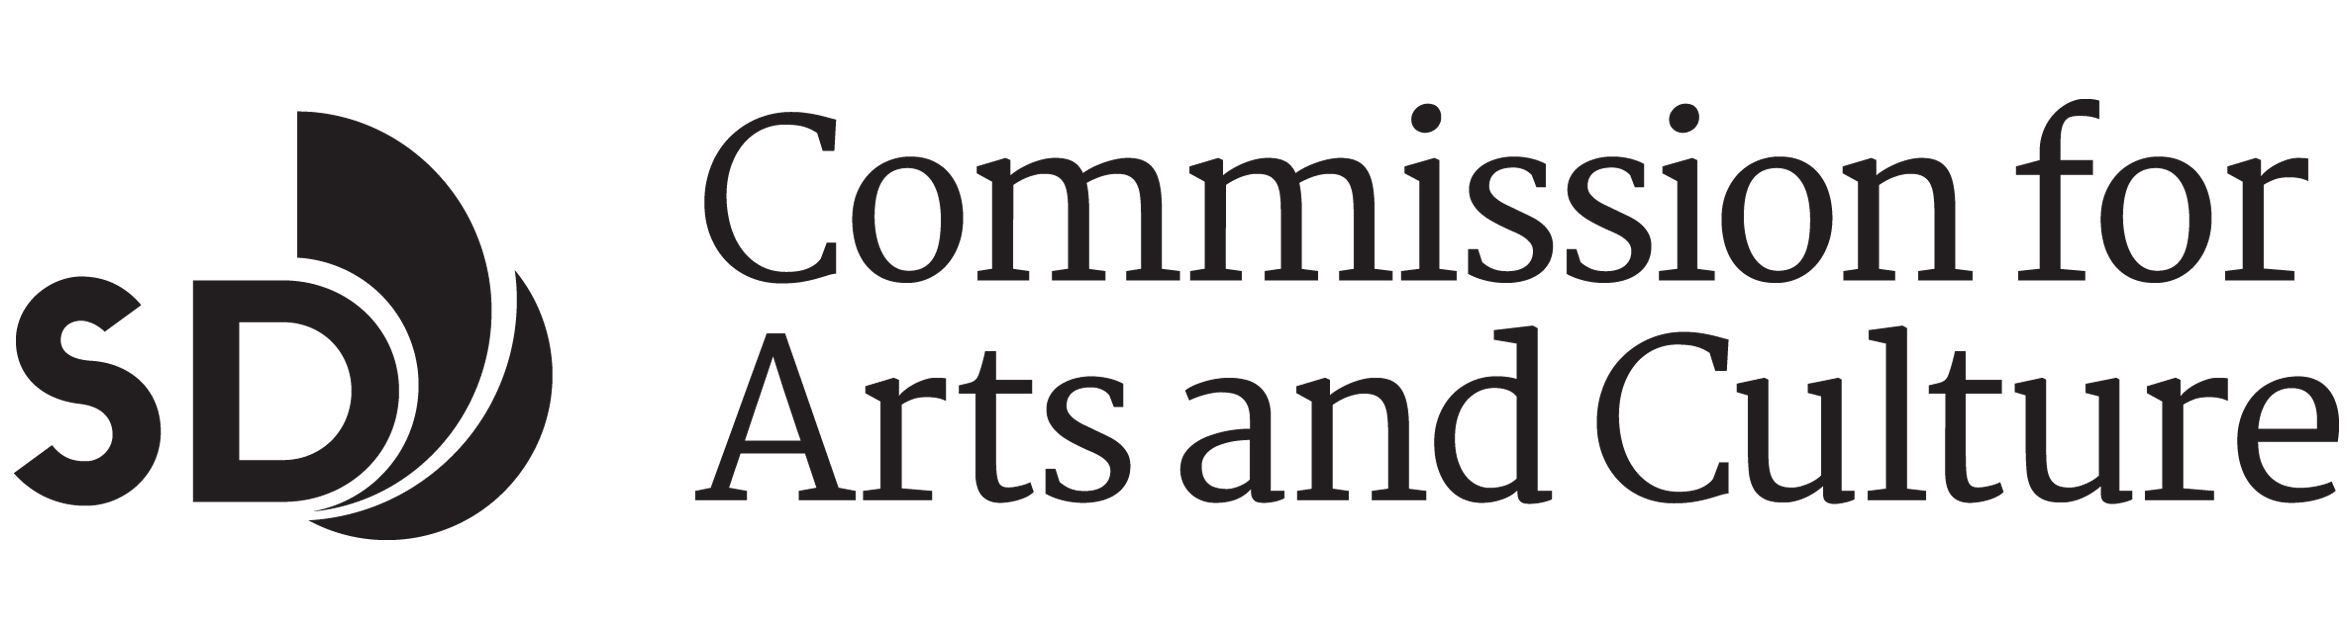 Commission for Arts and Culture logo